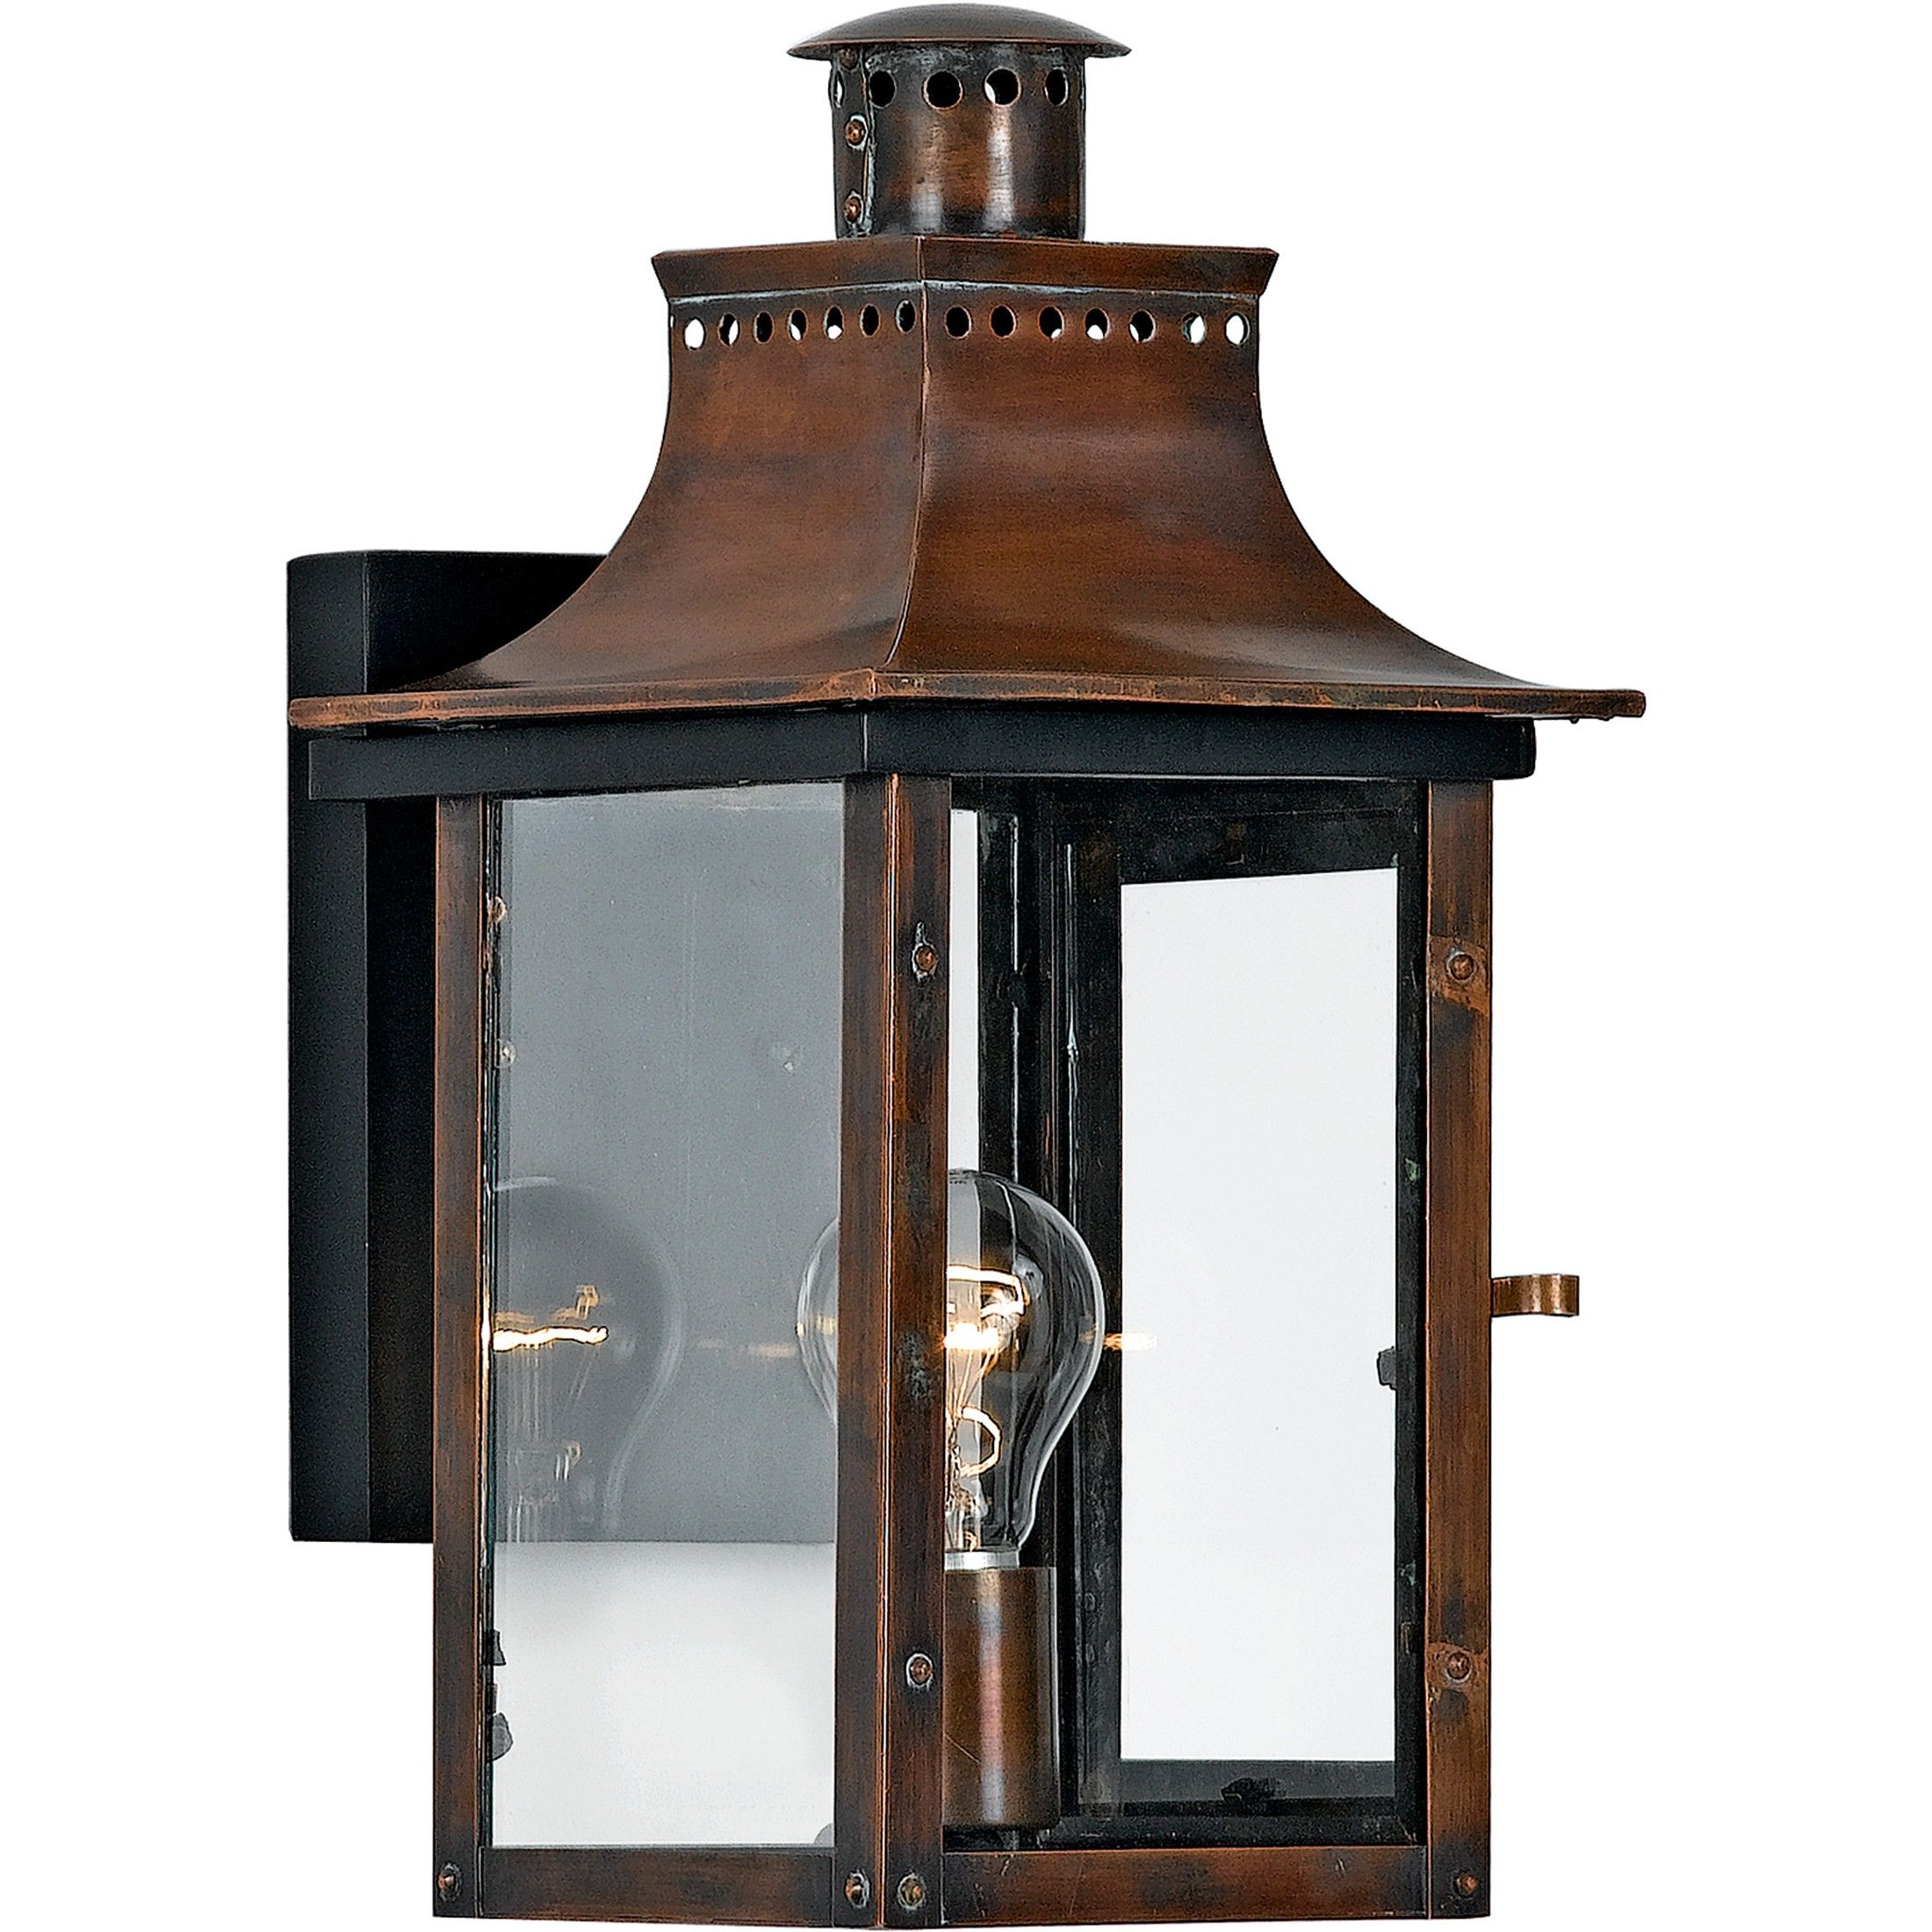 The lighting house exterior wall mount one light outdoor wall